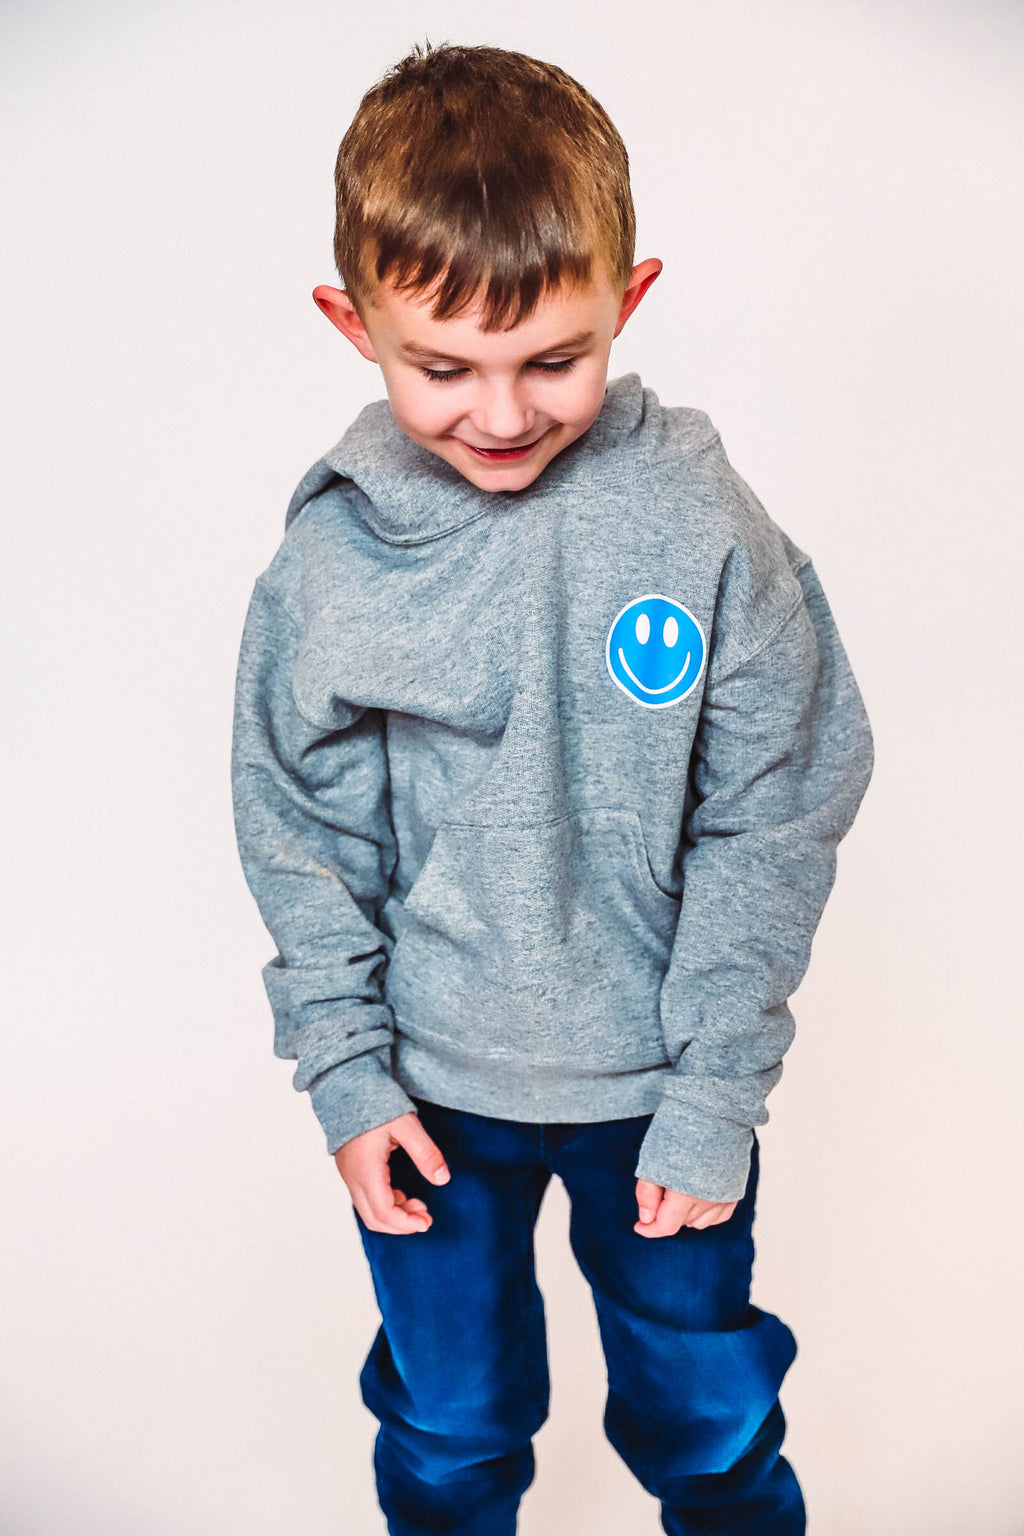 Y-Chain Link Necklace